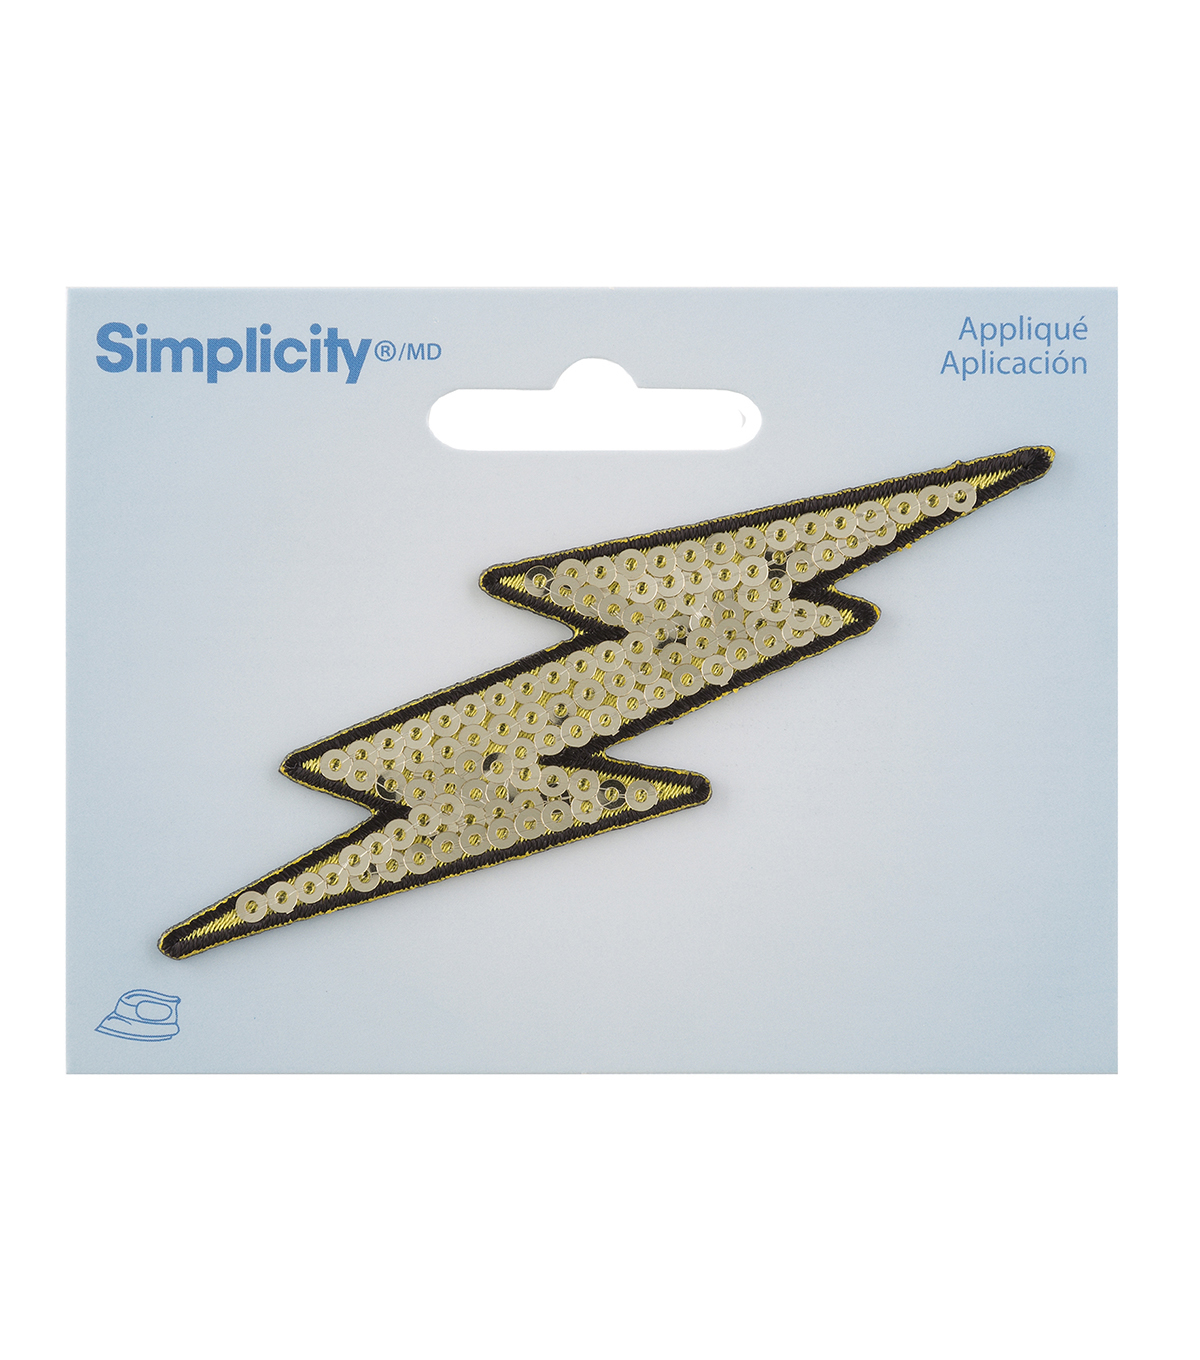 Simplicity Lightning Bolt Iron-on Applique with Sequins-Gold